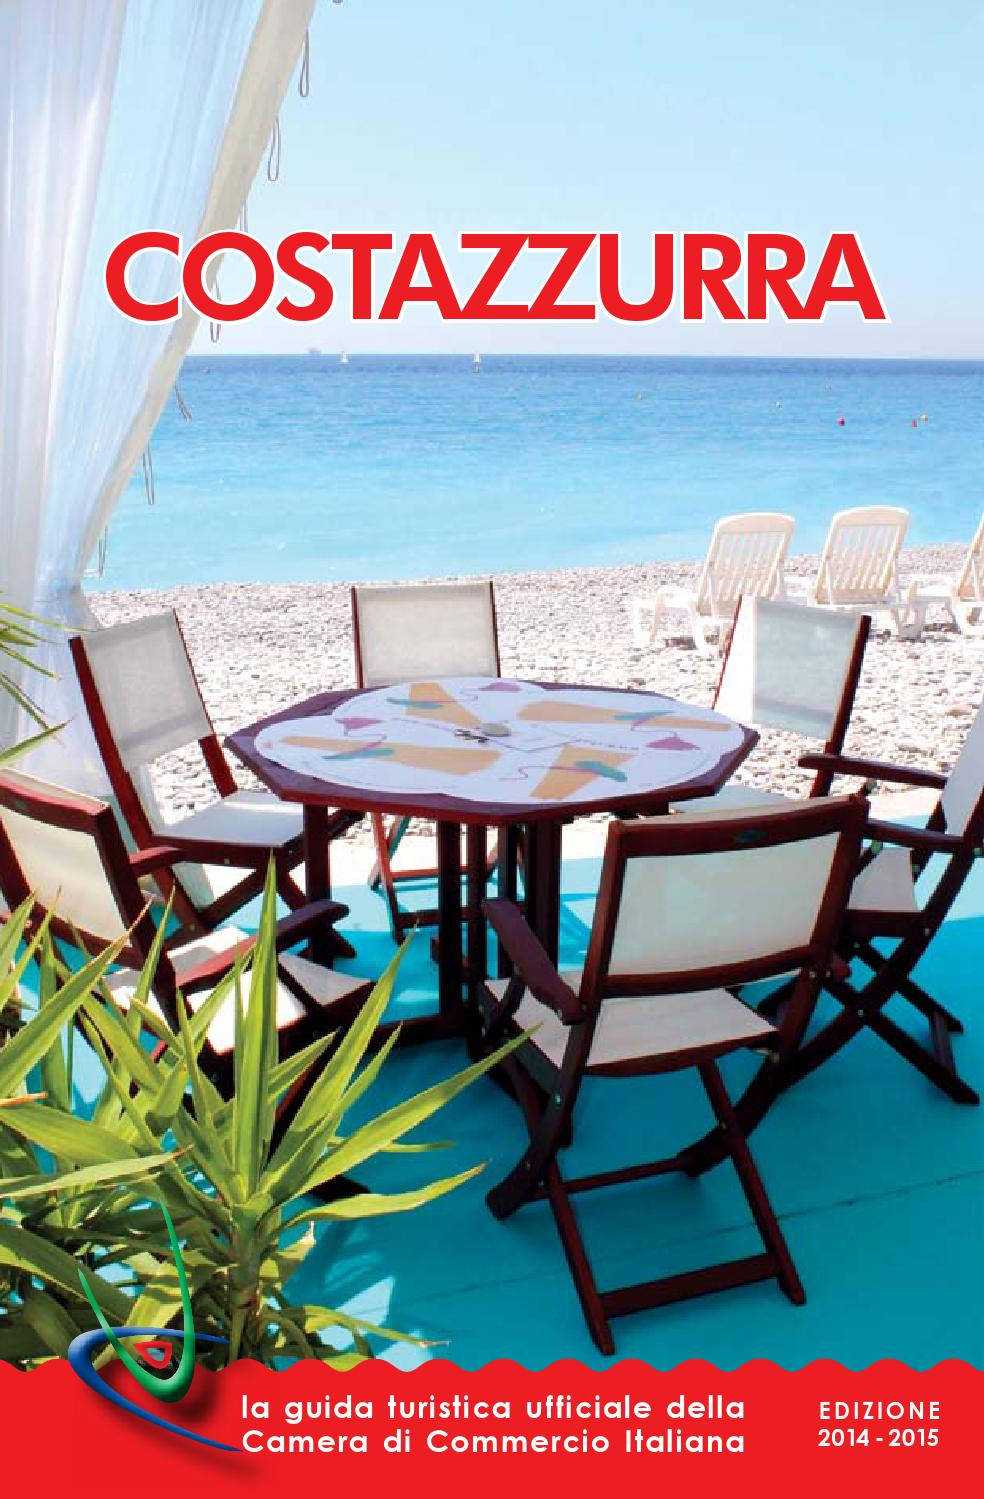 Issuu guida turistica costazzurra 2014 by chambre de for Chambre de commerce franco italienne